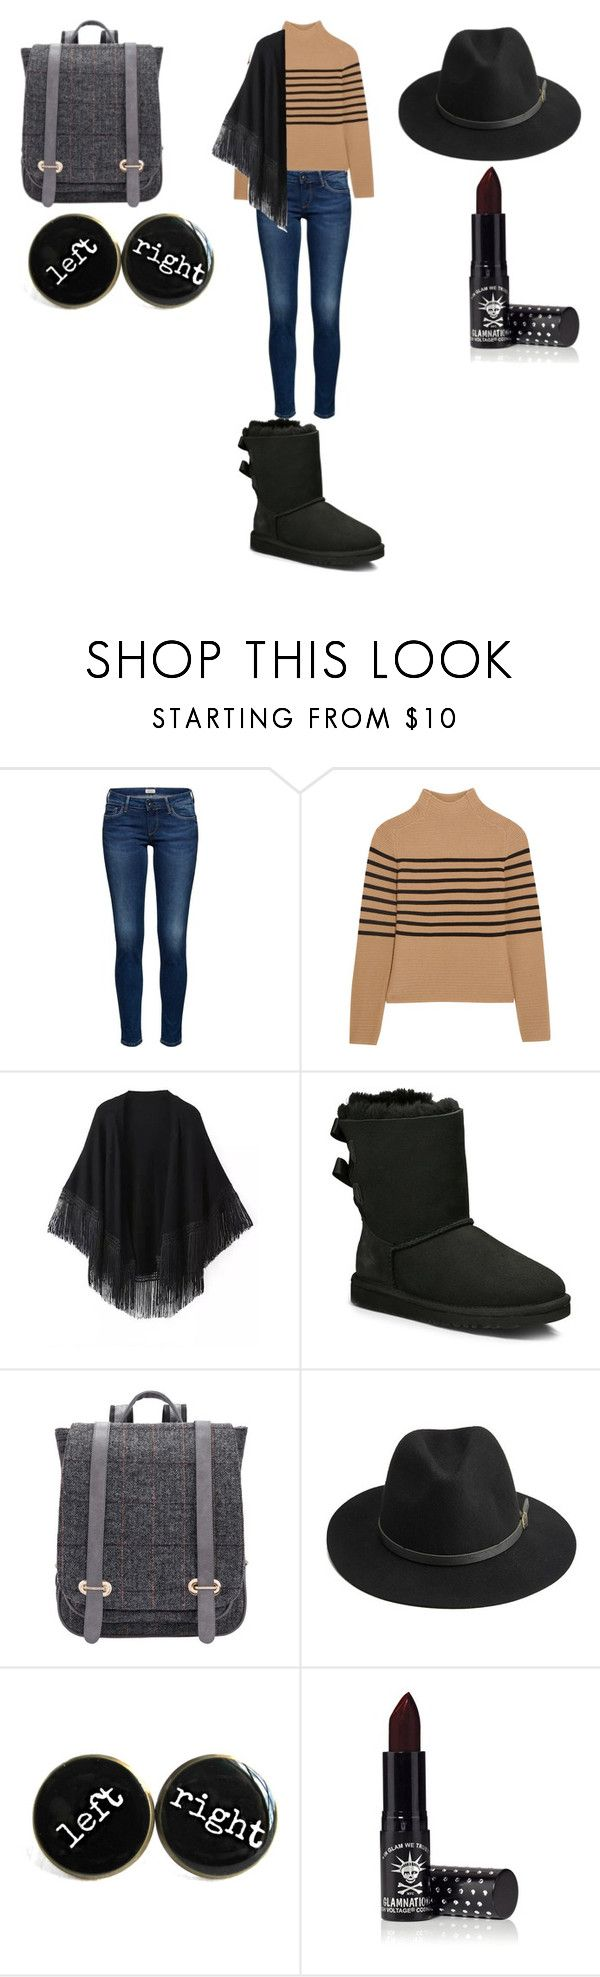 """""""Untitled #370"""" by luanaornella1567 ❤ liked on Polyvore featuring Topshop Unique, Relaxfeel, UGG Australia, BeckSöndergaard and Manic Panic"""